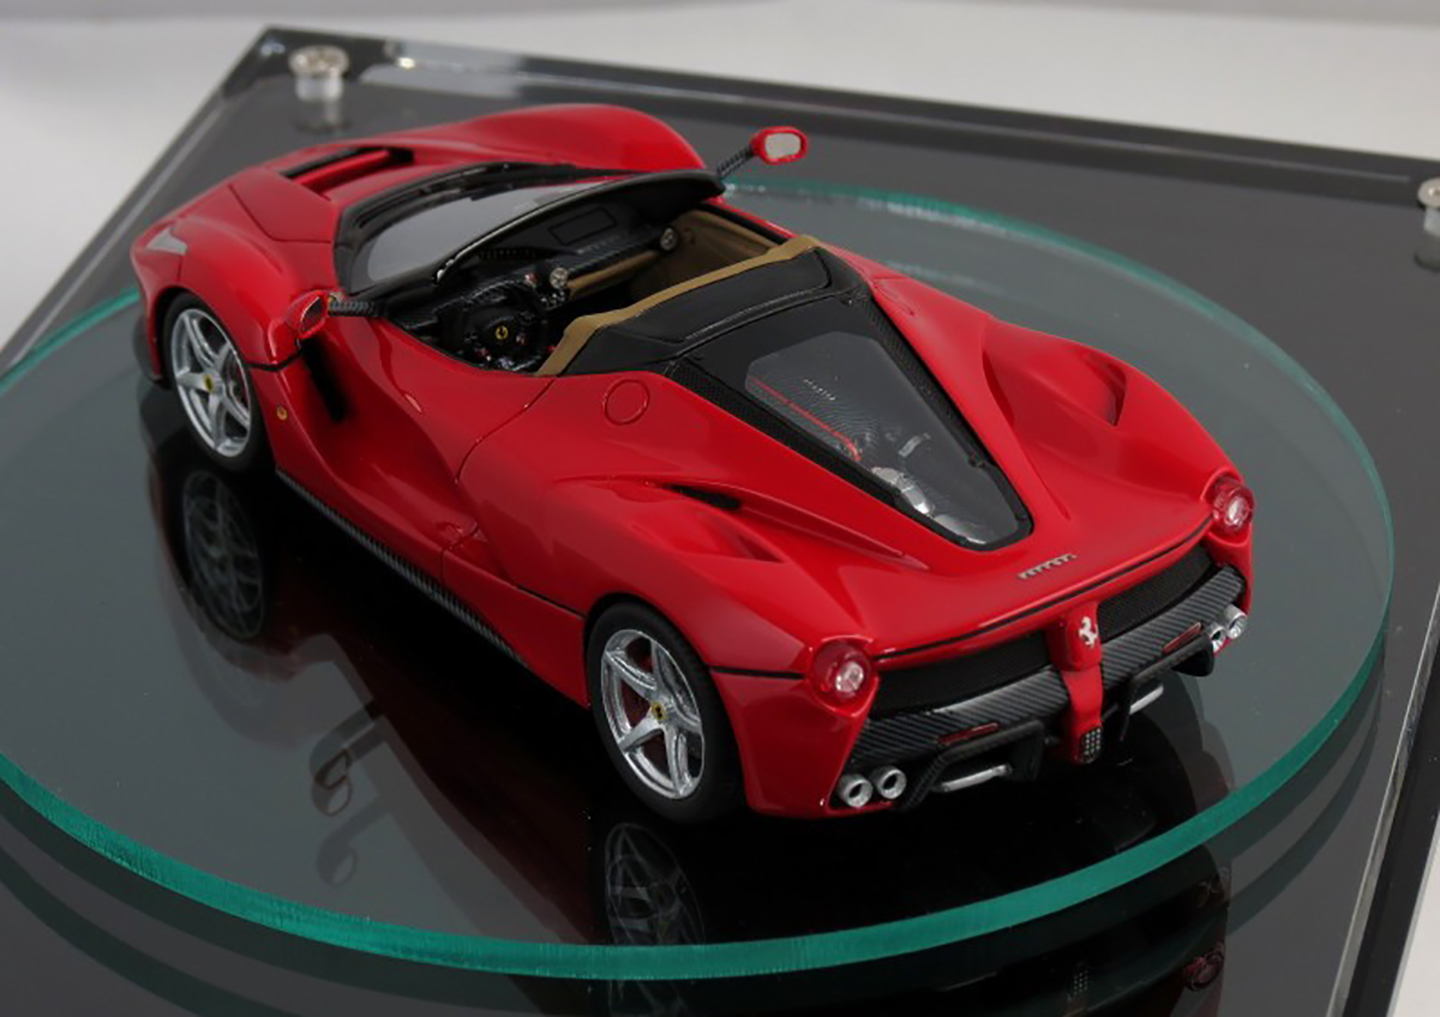 2017 laferrari spider previewed by scale model photos caradvice. Black Bedroom Furniture Sets. Home Design Ideas